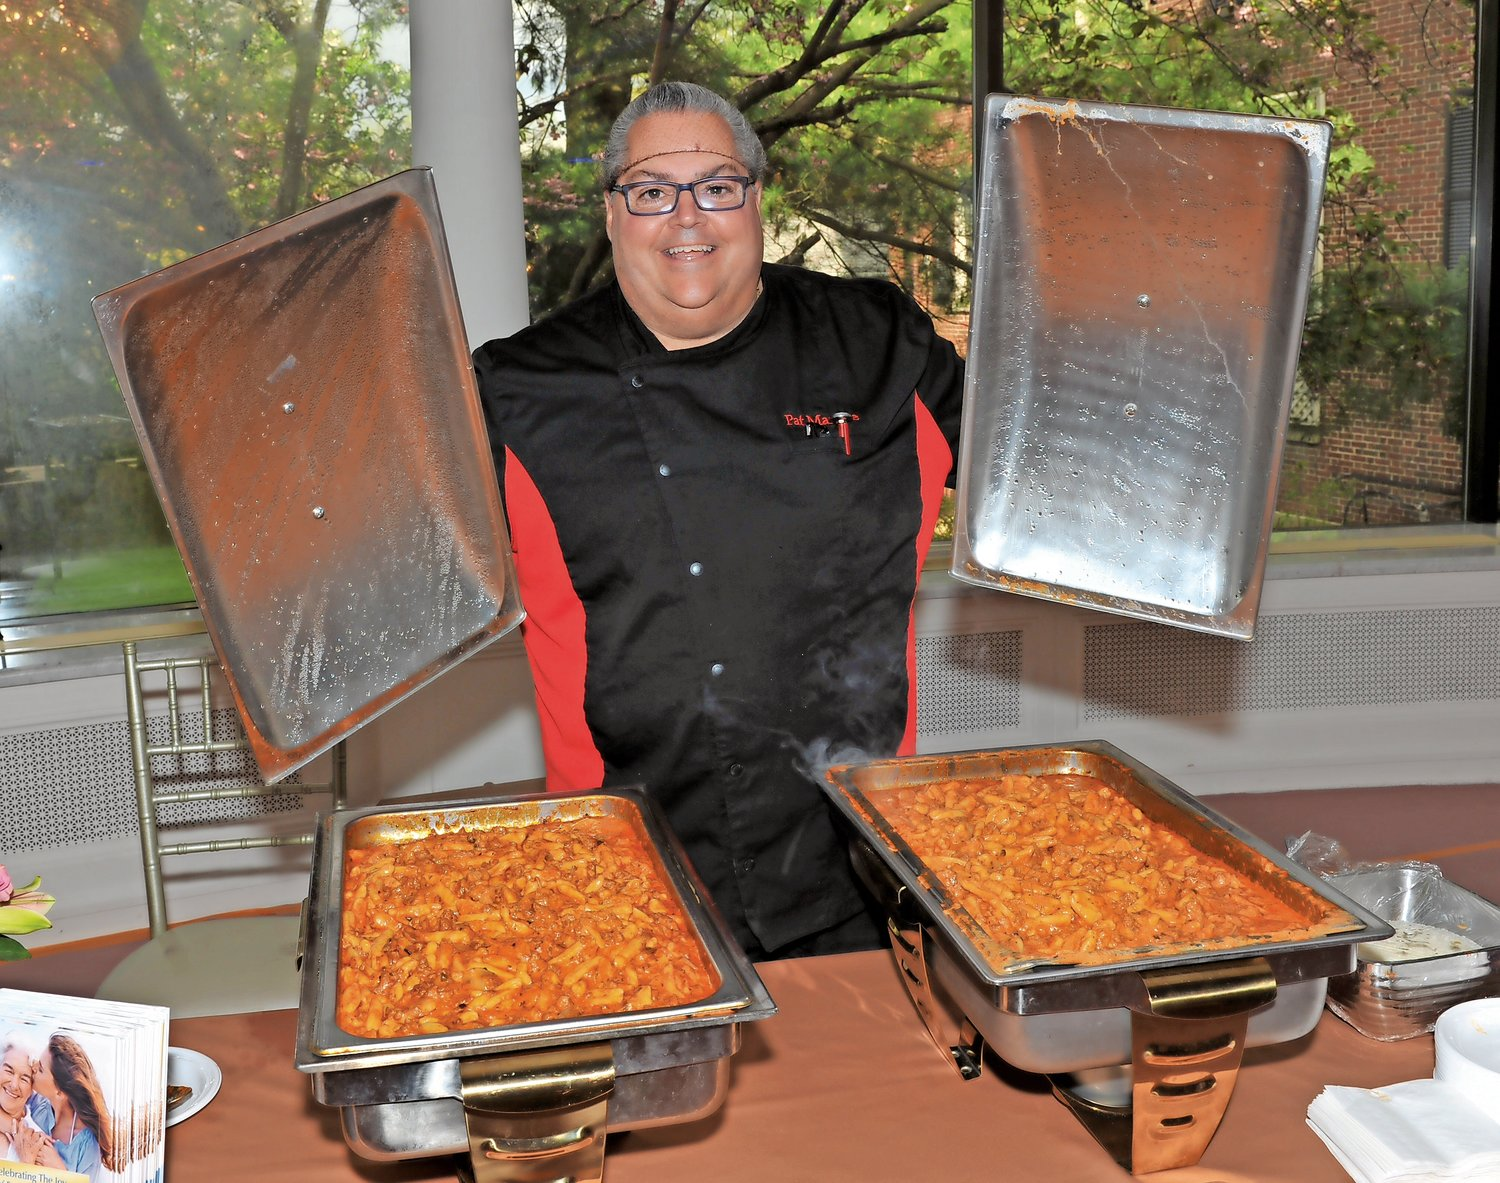 Chef Pat Marone, of the Regency, served up samples of a special pasta dish.